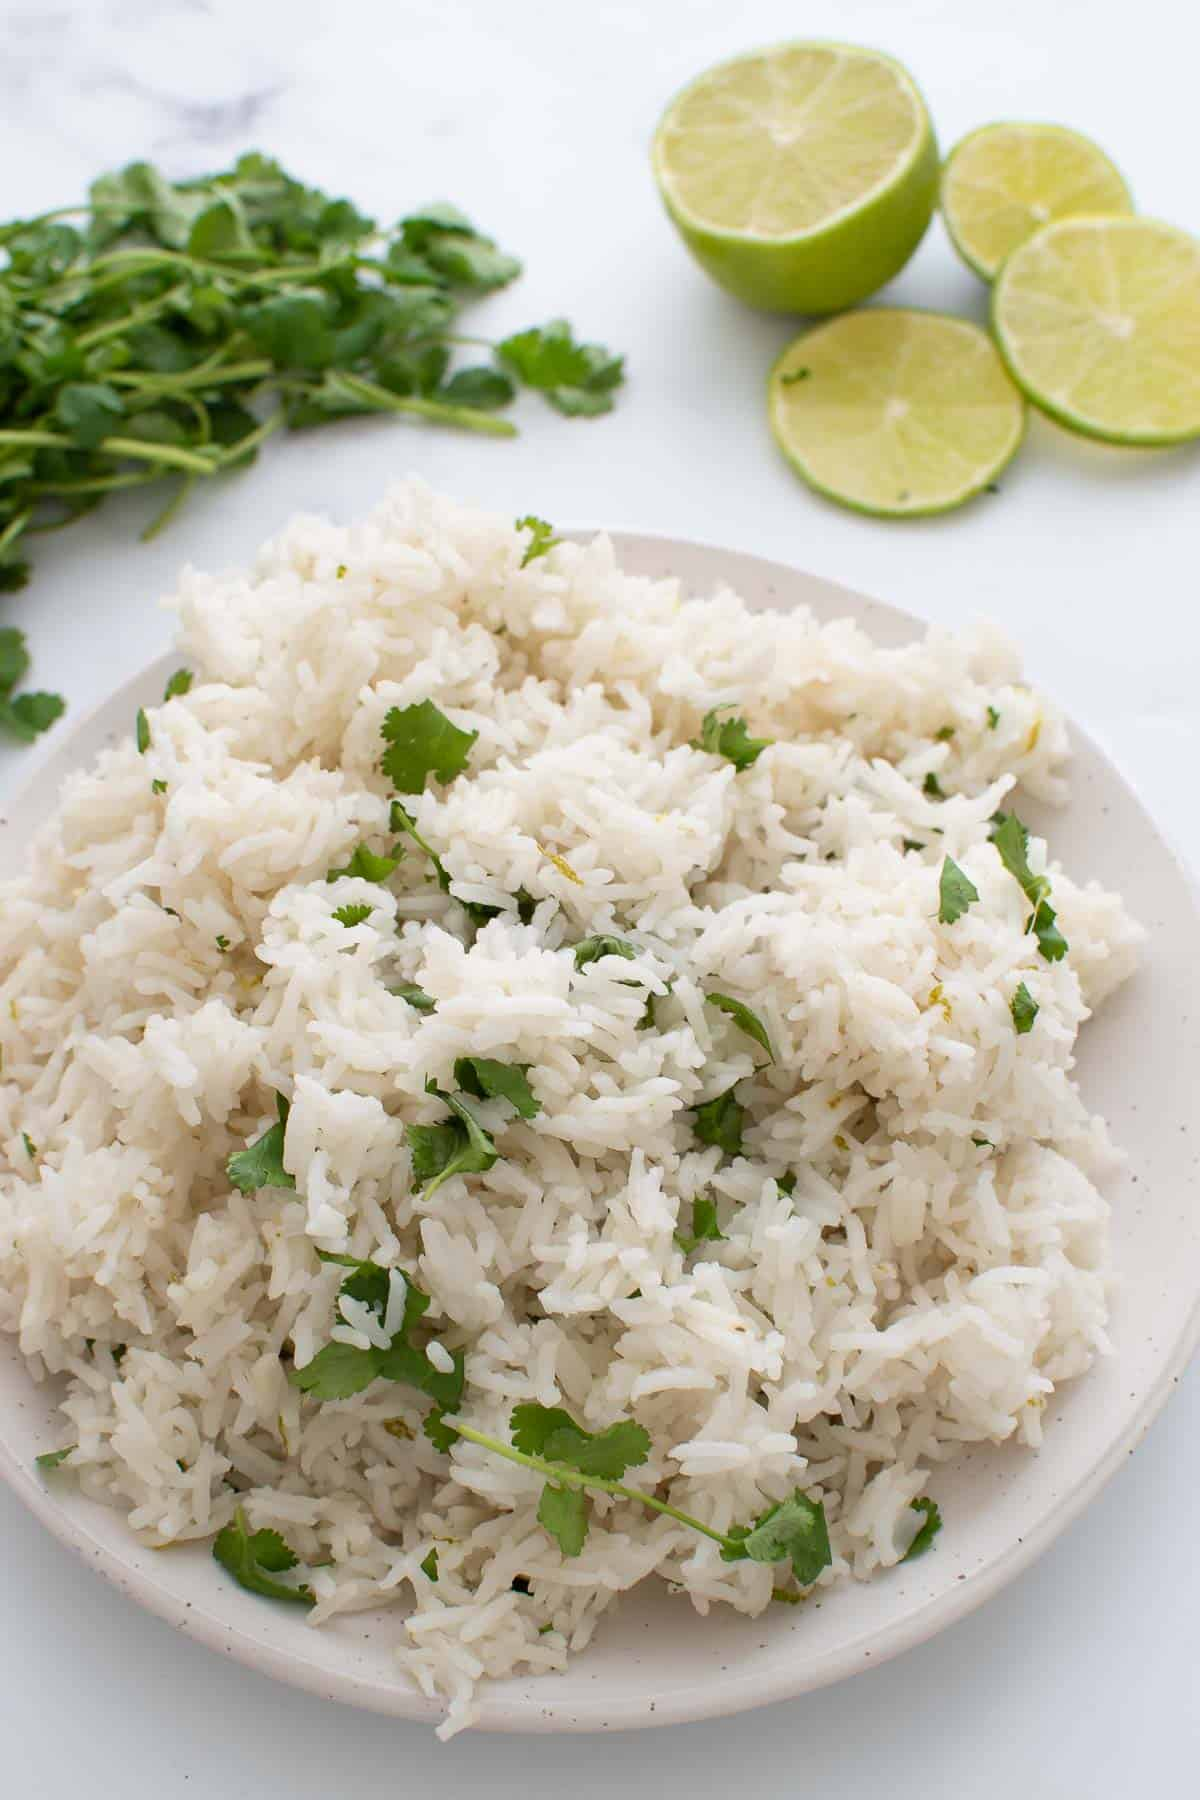 Cilantro lime rice cooked in an instant pot.